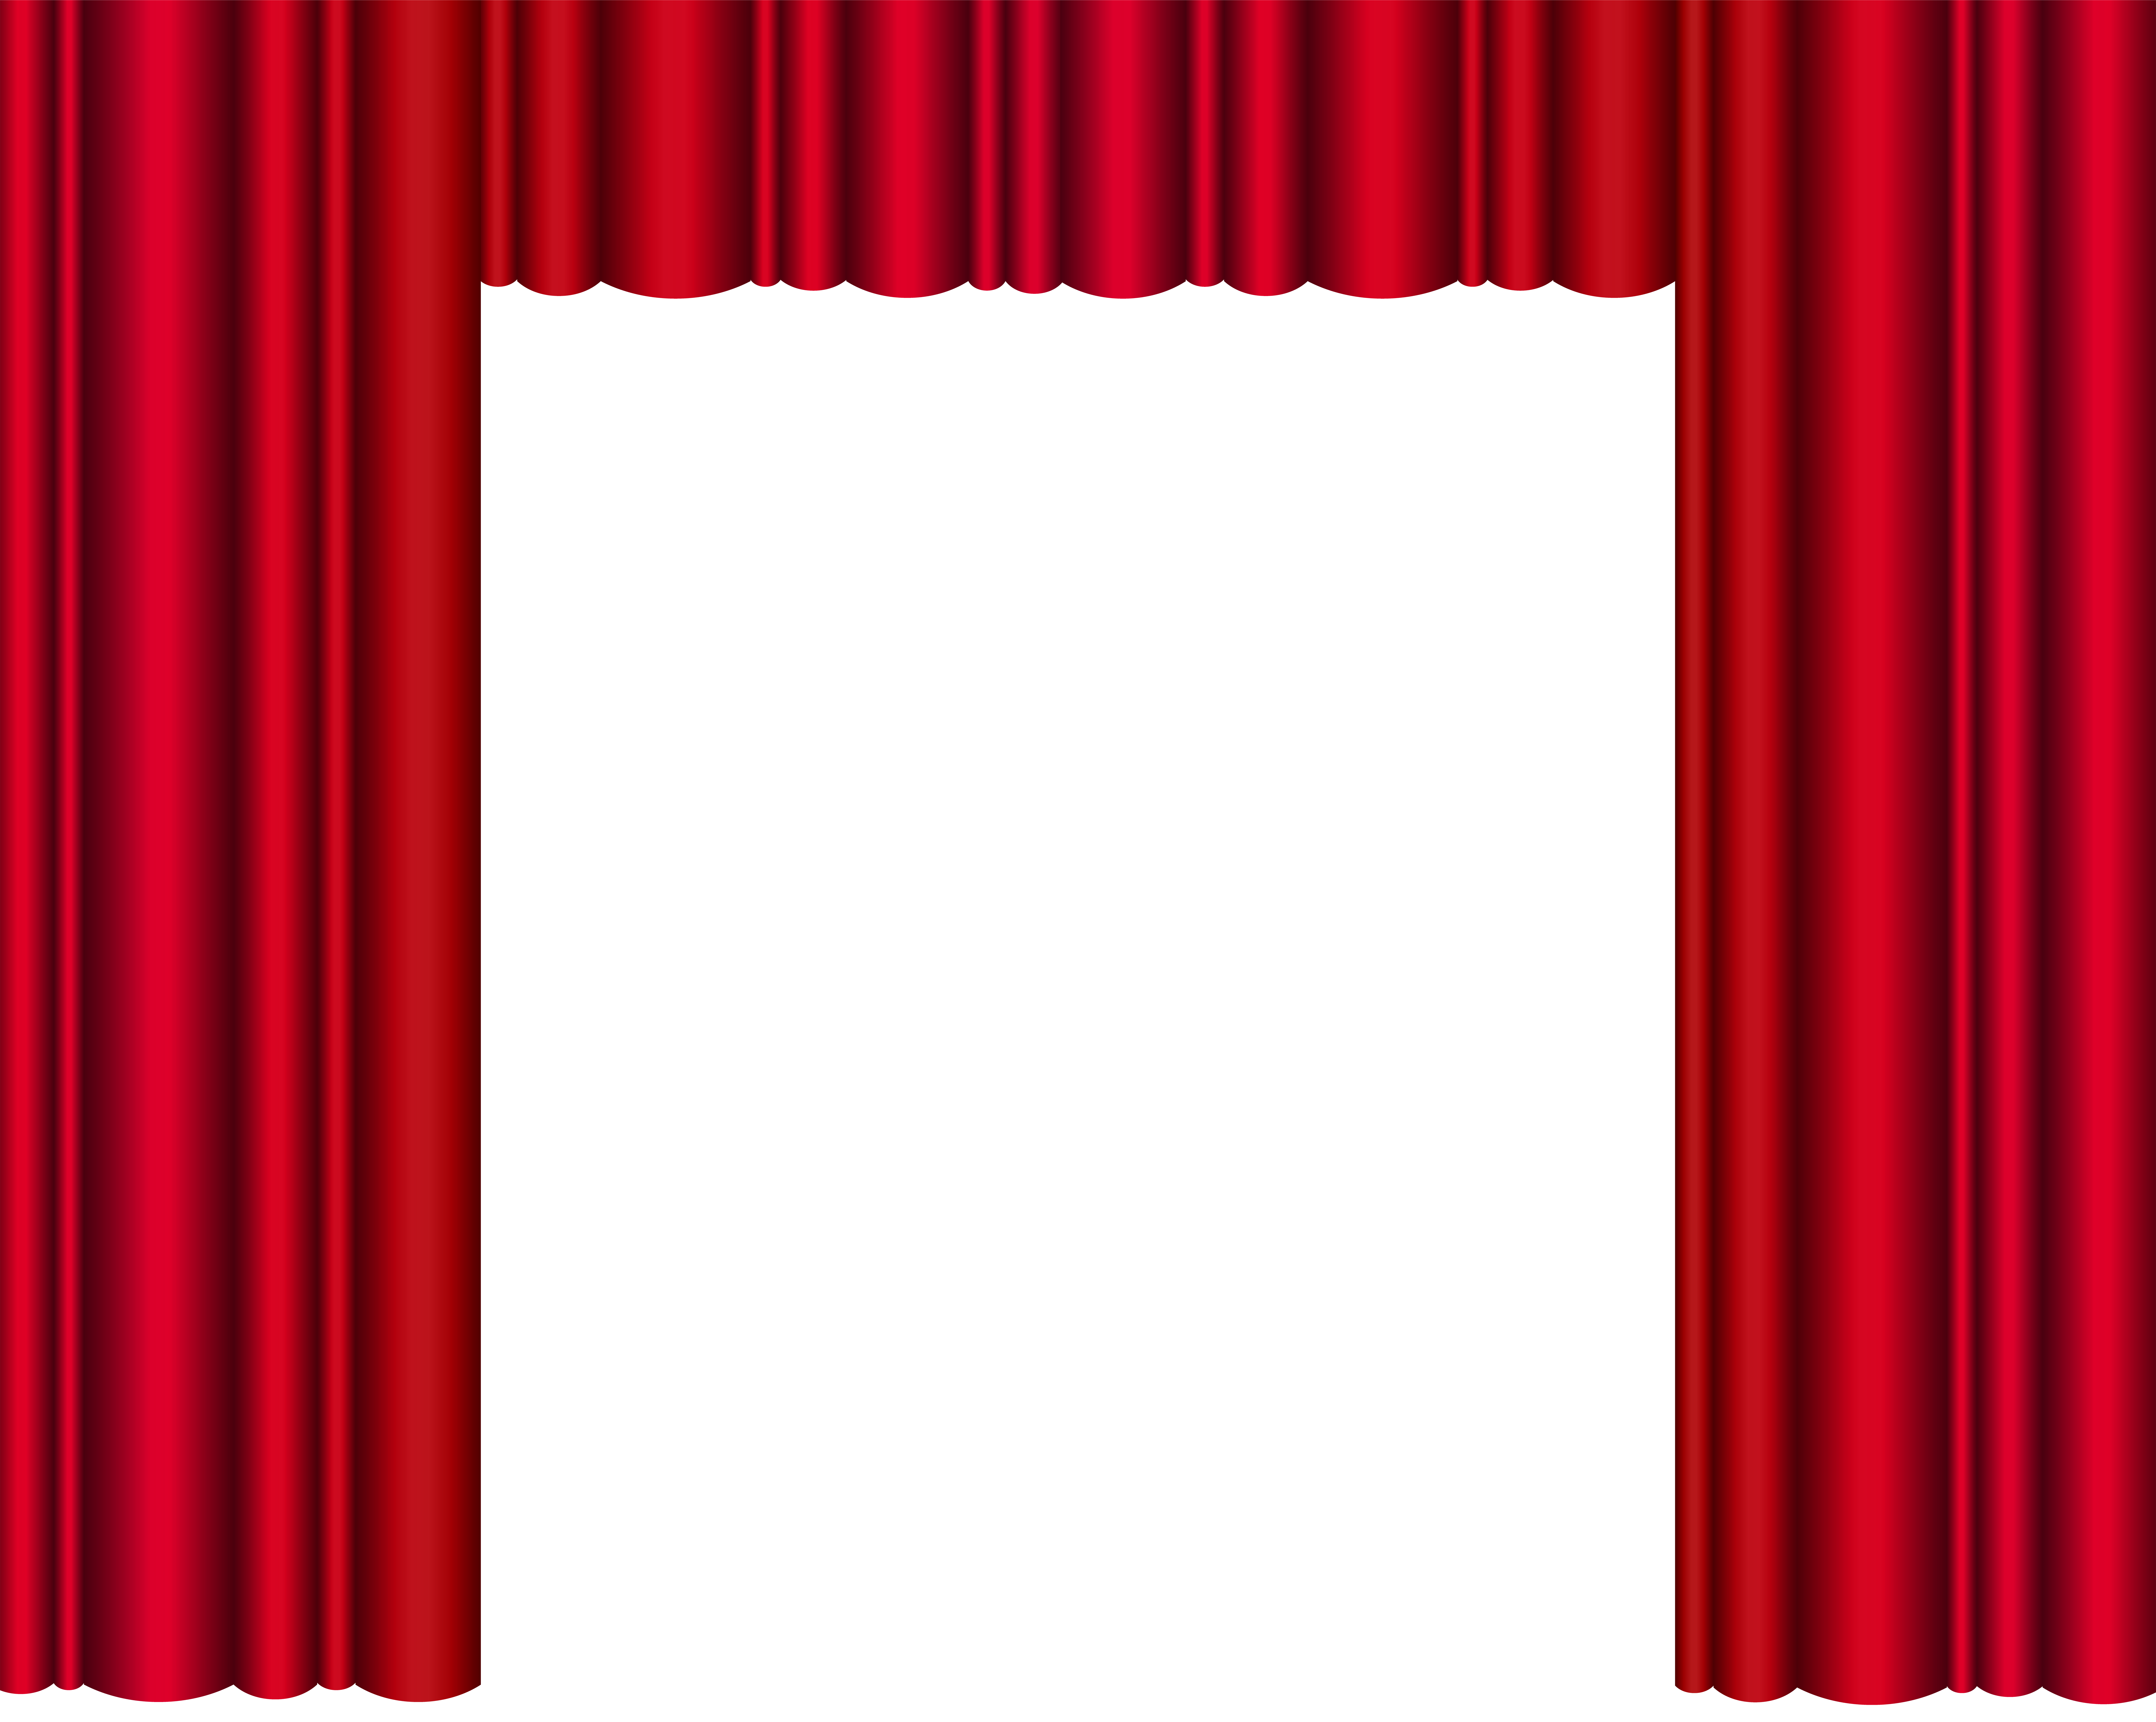 Red theater curtain clipart banner freeuse Red Theater Curtains Transparent PNG Clip Art Image ... banner freeuse